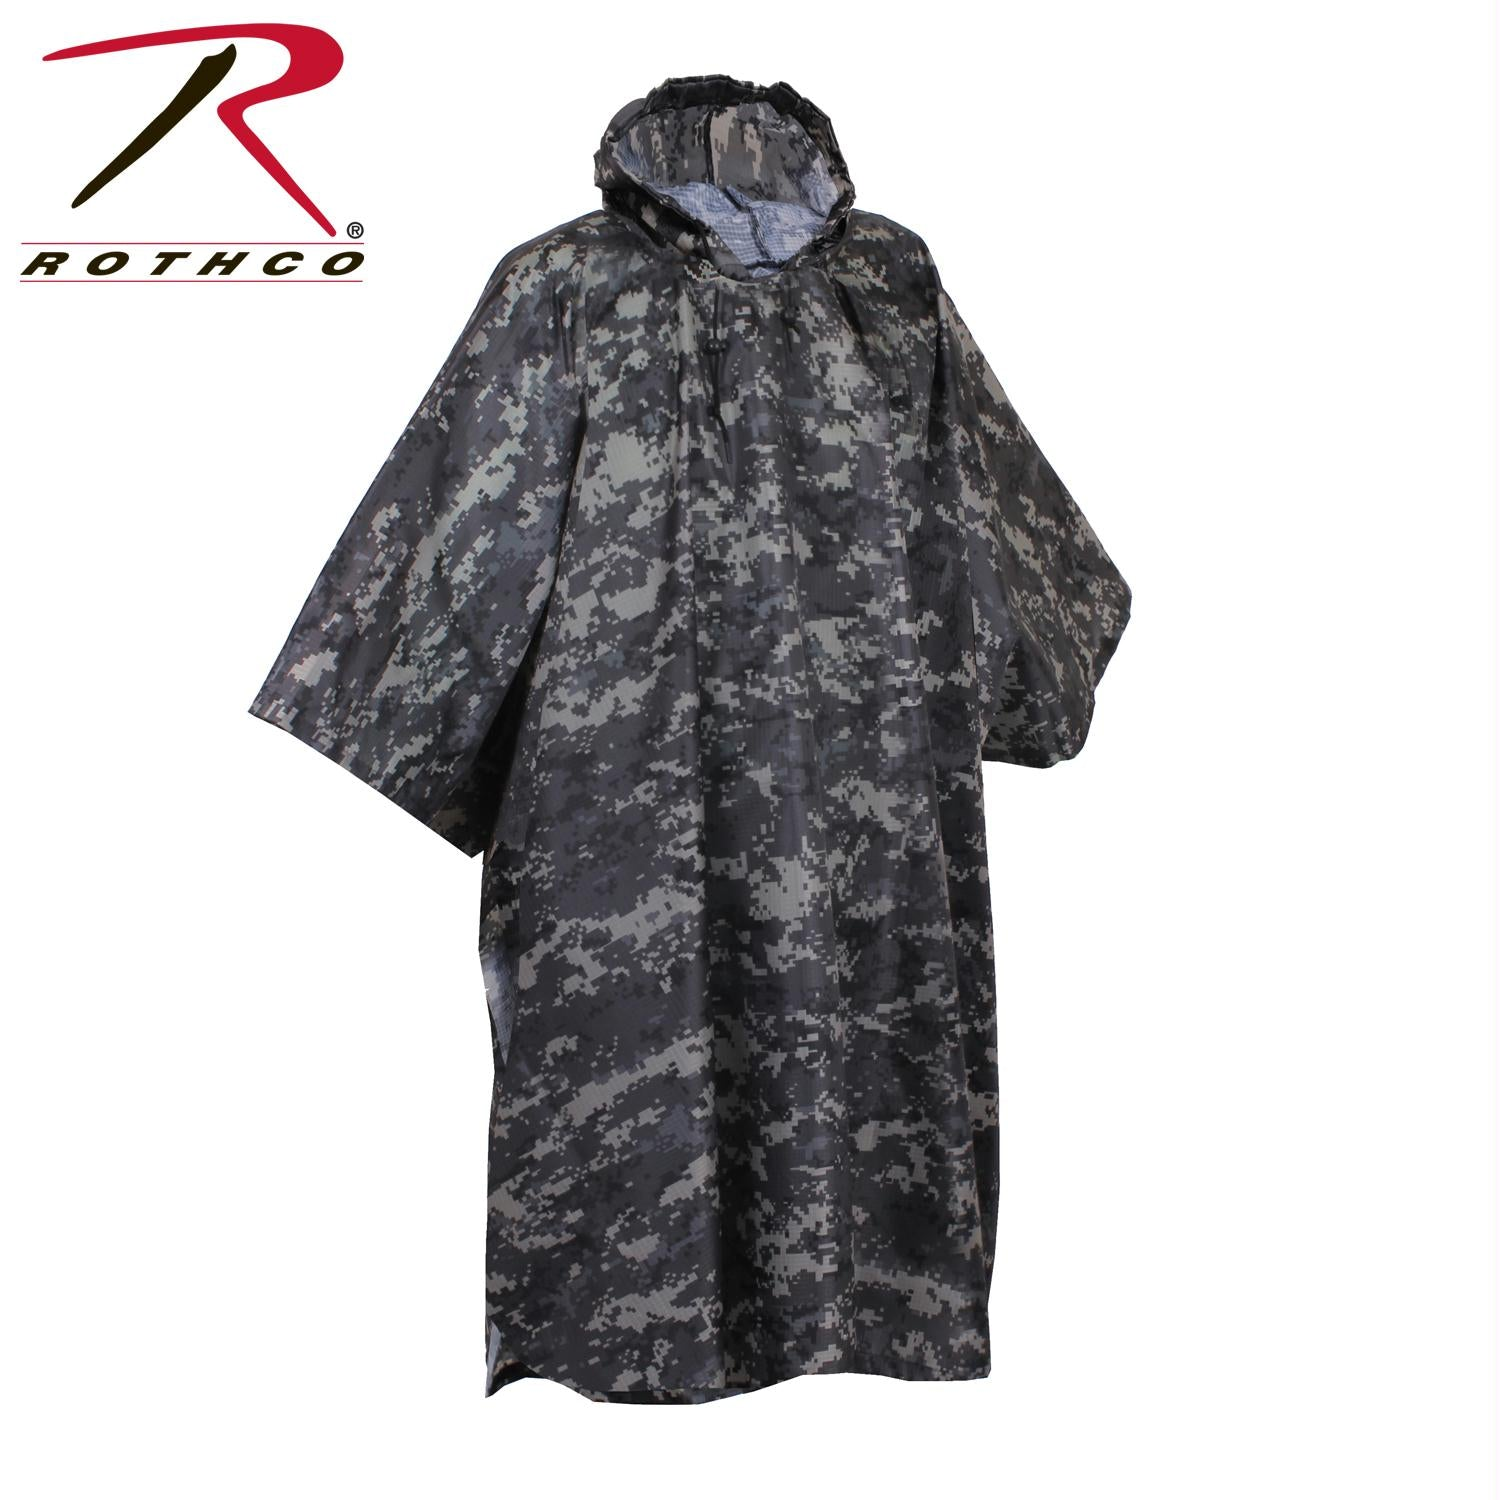 Rothco G.I. Type Military Rip-Stop Poncho - Subdued Urban Digital Camo